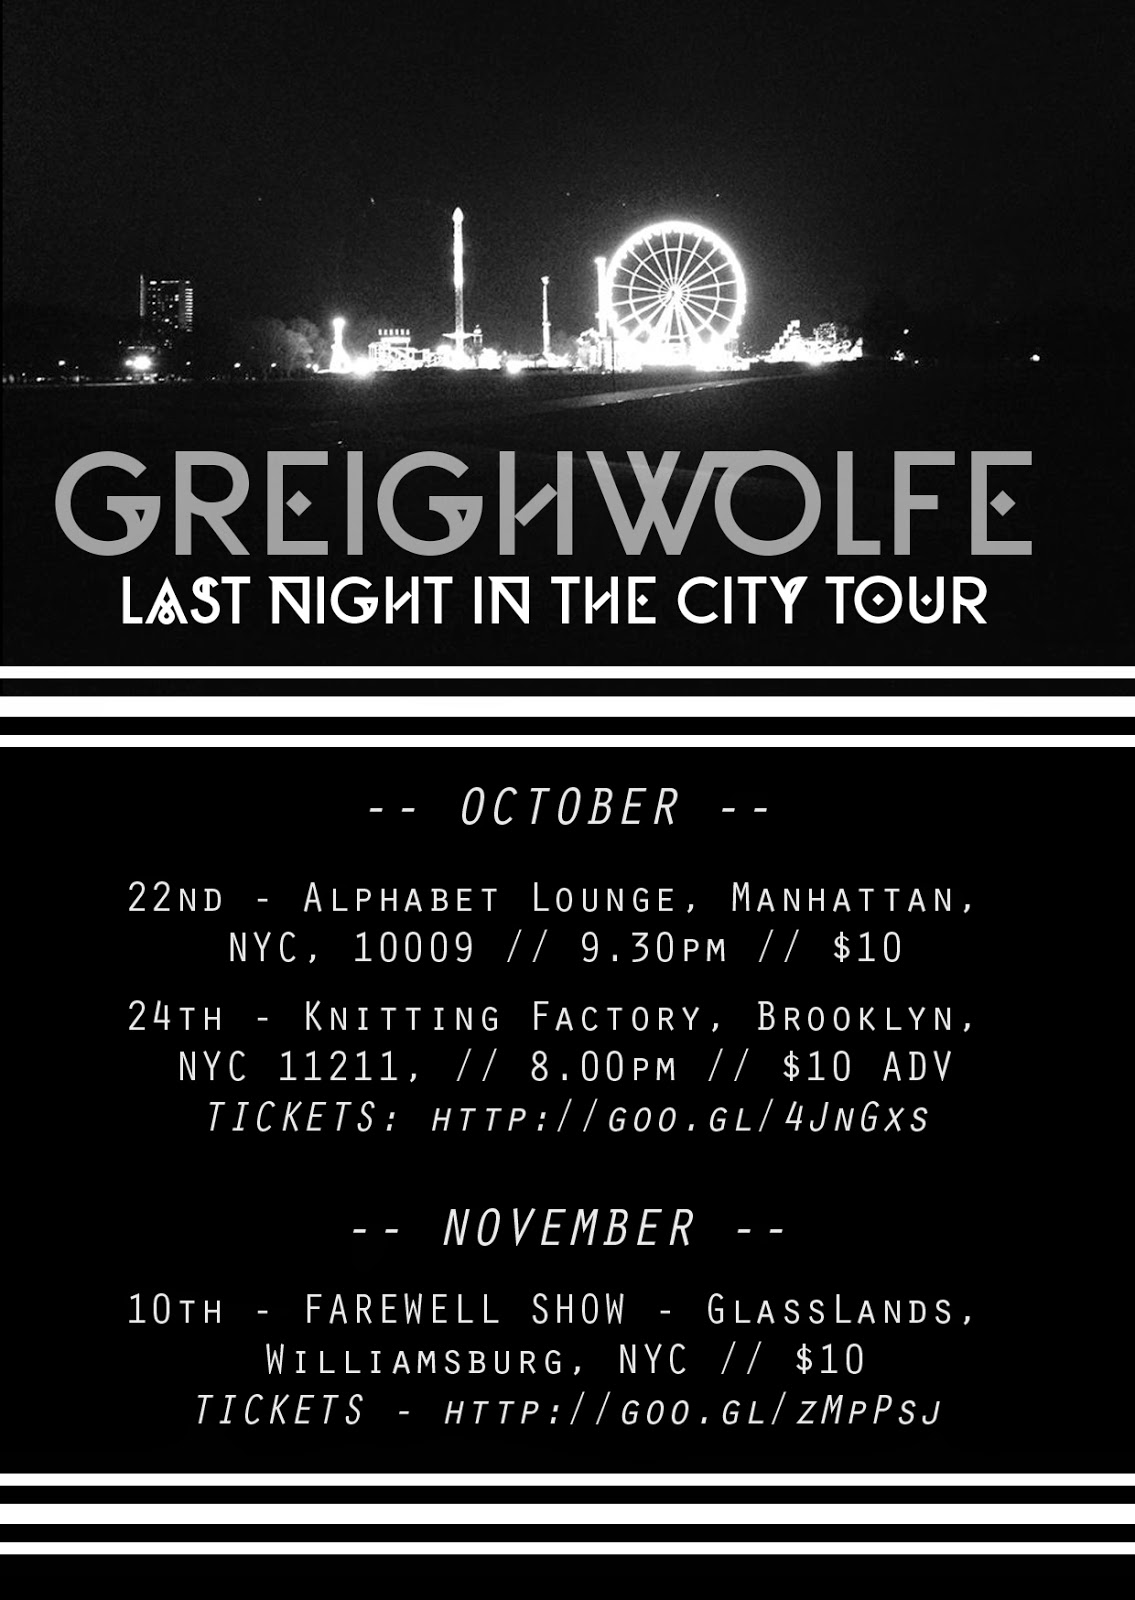 Greighwolfe - Last Night in the City Tour - NYC